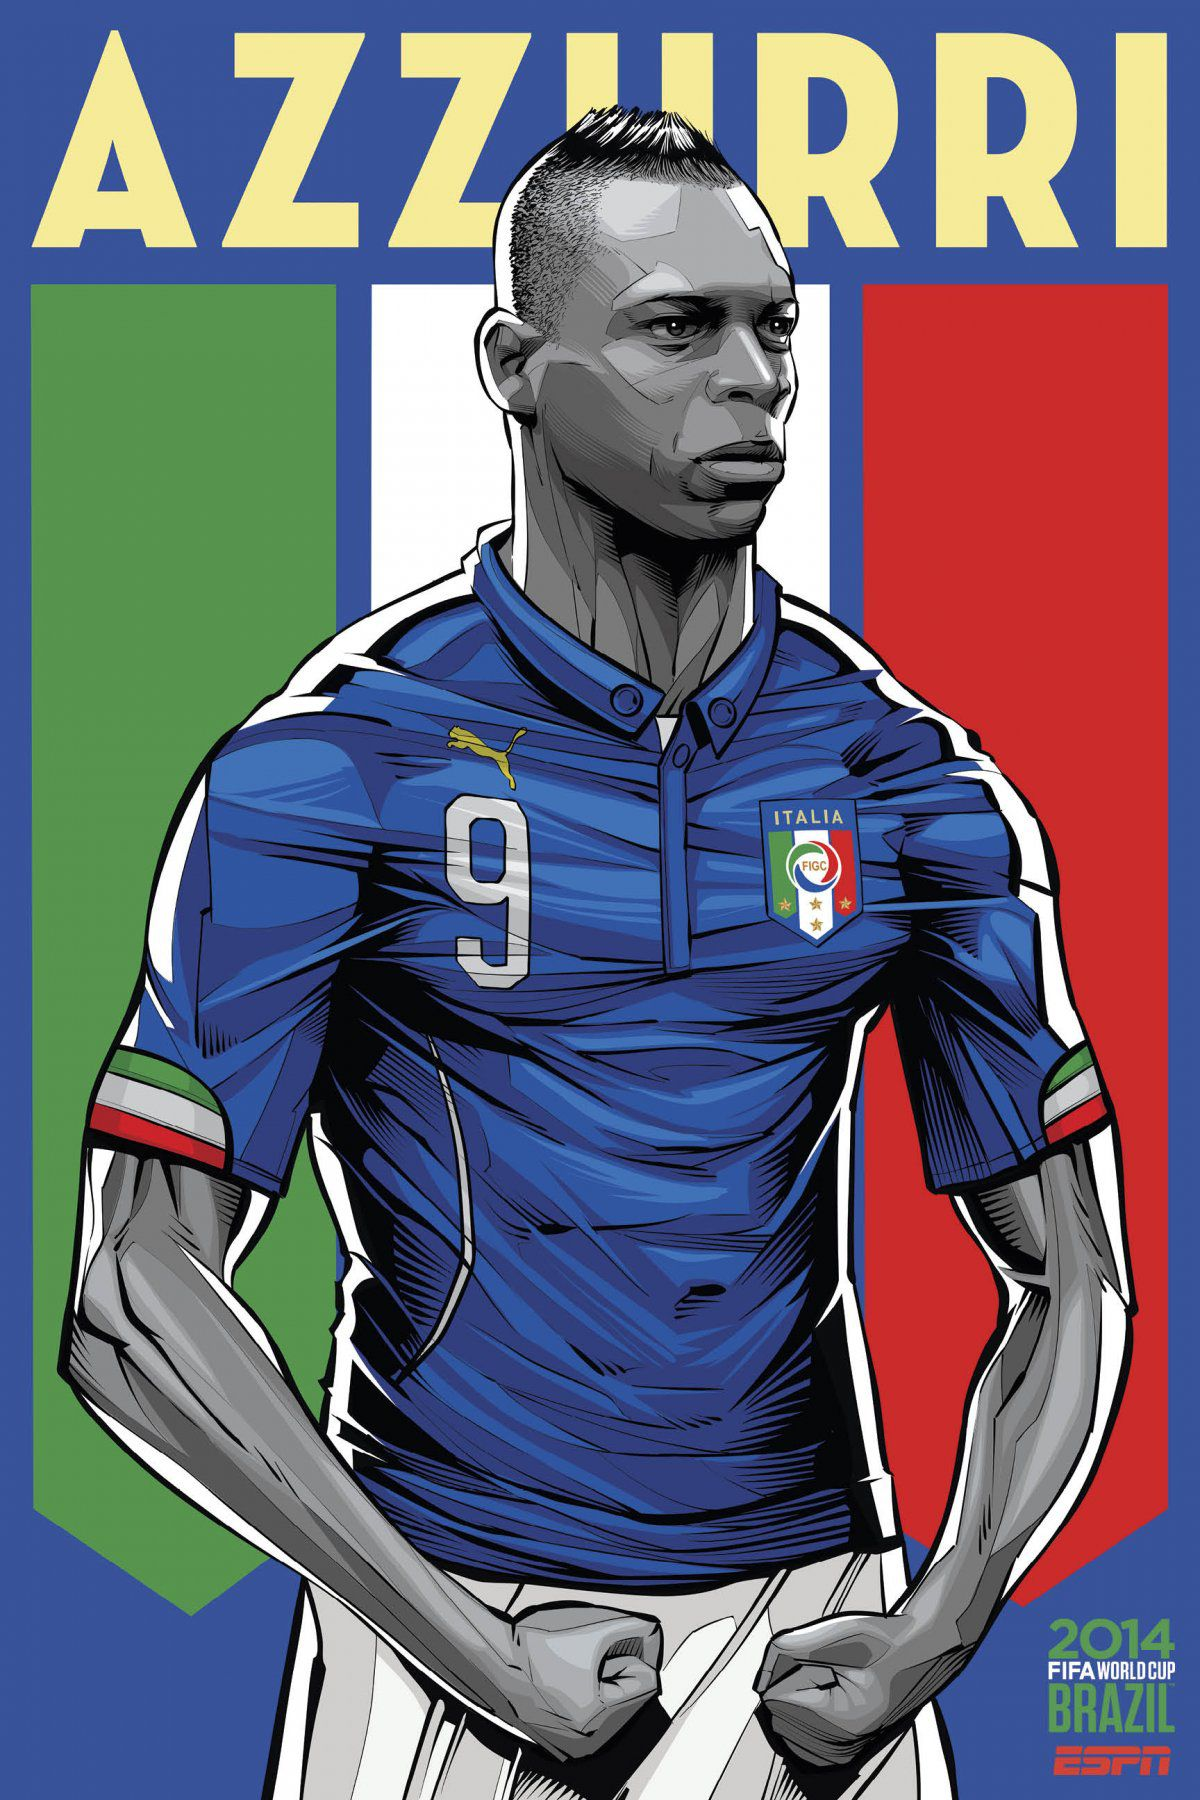 ESPN poster world cup brazil 2014 of Italy